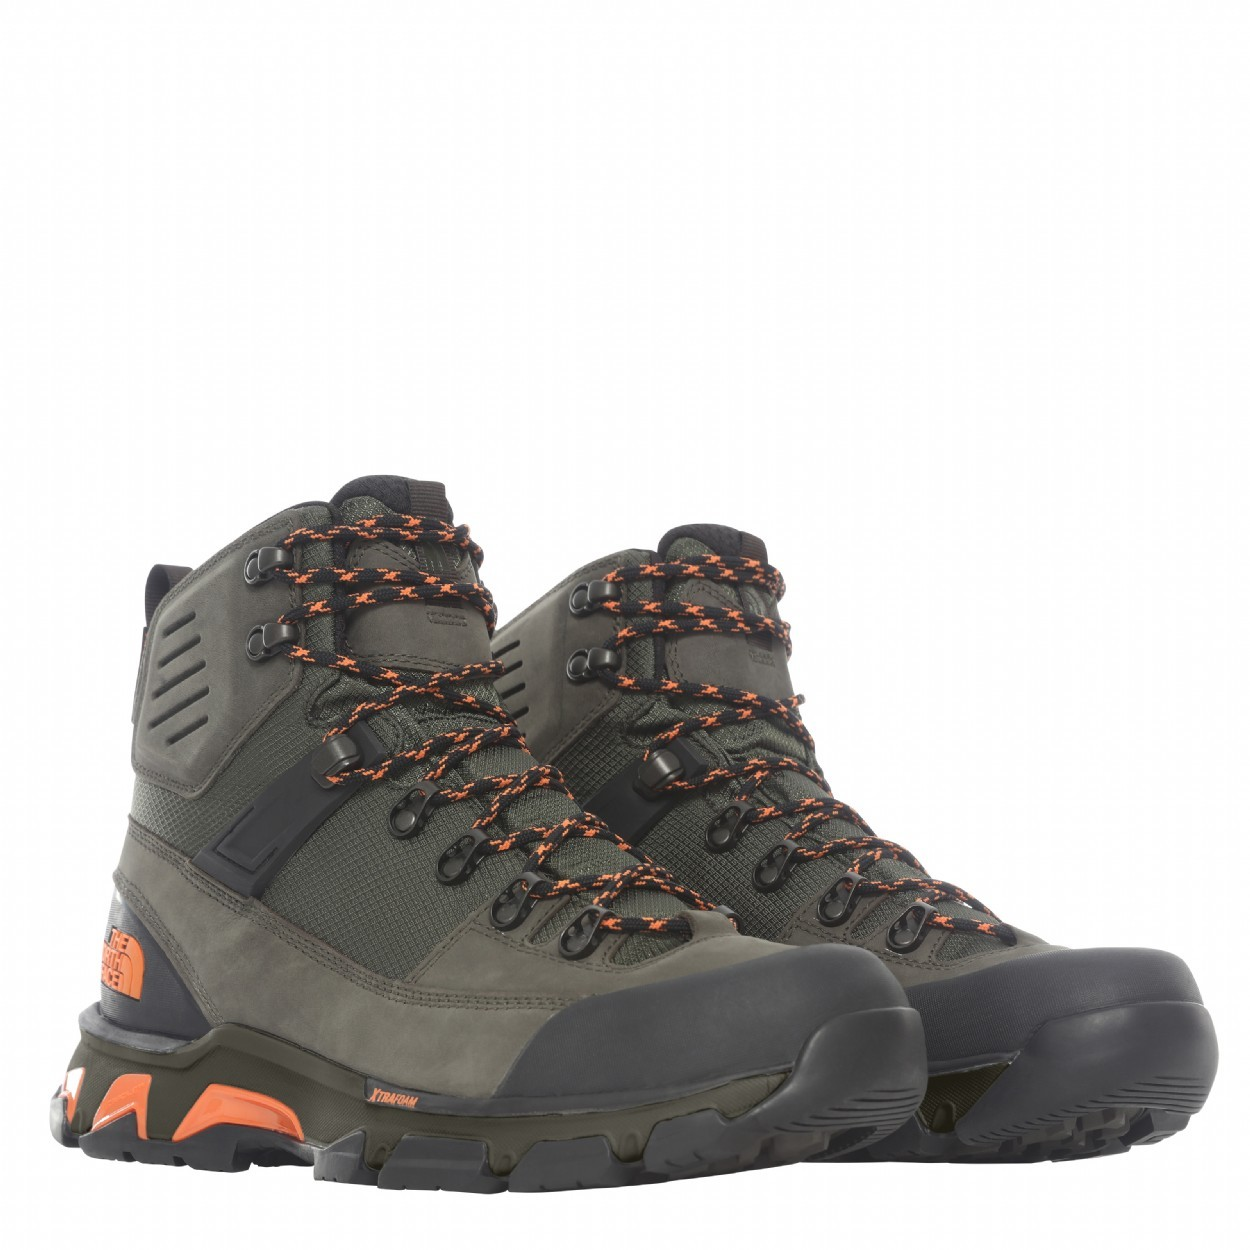 Trekking ve Hiking Ayakkabısı | The North Face Crestvale Futurelight Erkek Bot | NF0A46BOBQW | The North Face Crestvale Futurelight Erkek Bot |